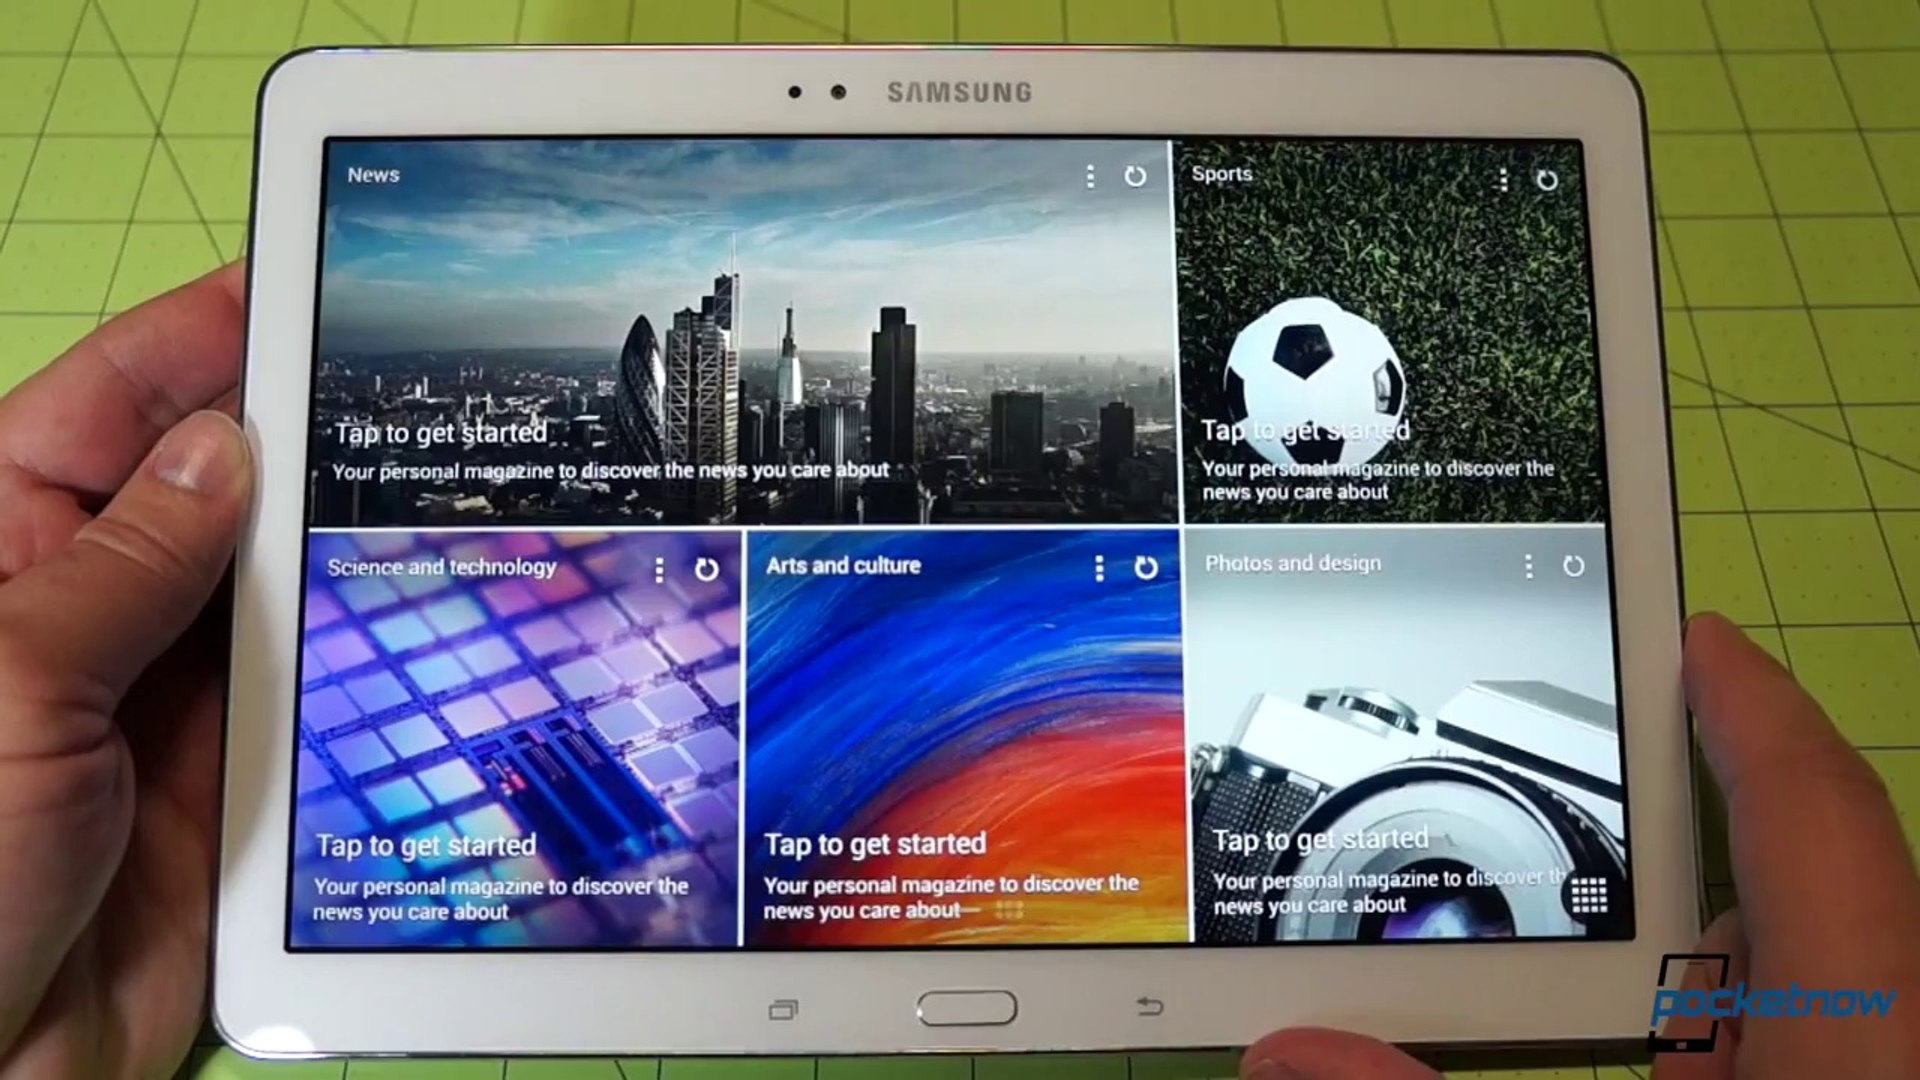 Samsung Galaxy Tab Pro 10.1  Unboxing and Hardware Tour